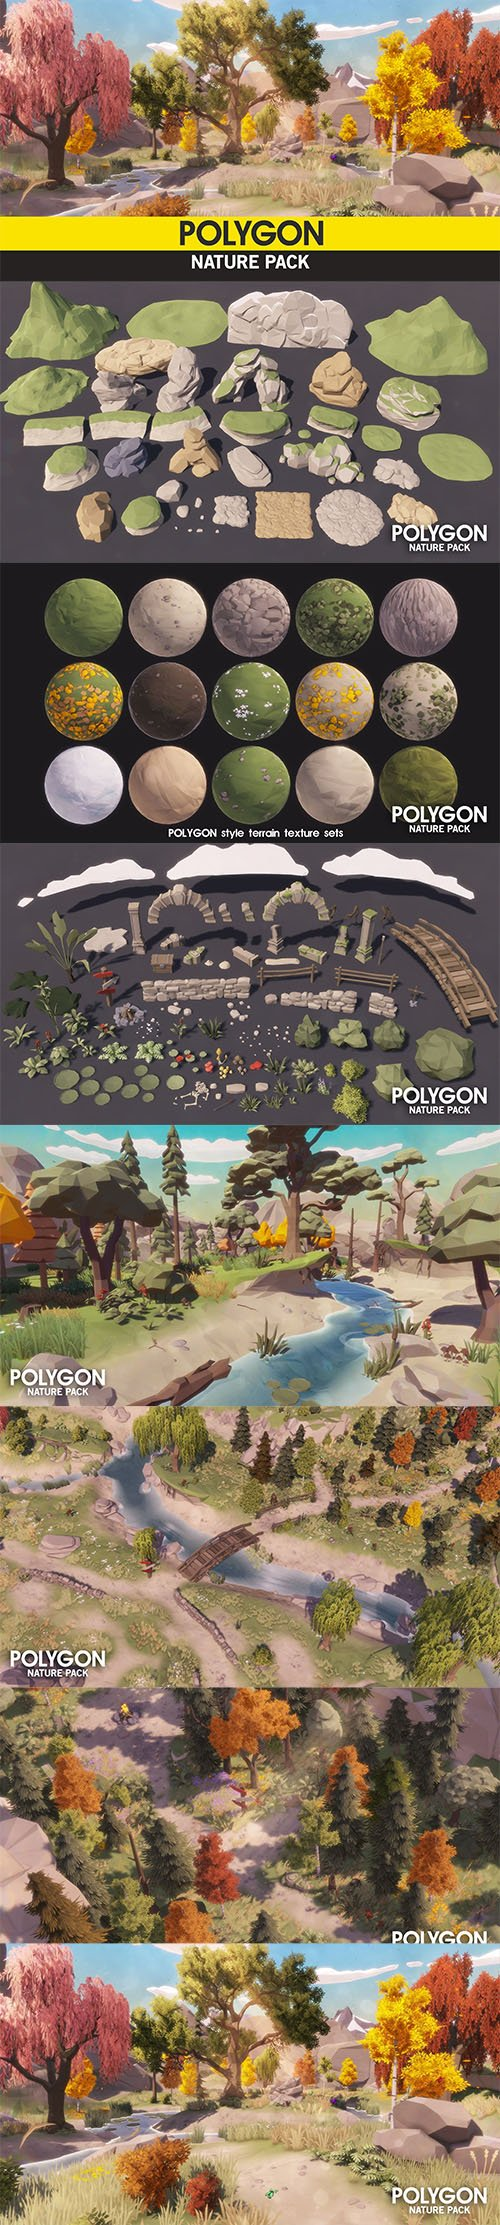 POLYGON - Nature Pack Low-poly 3D model